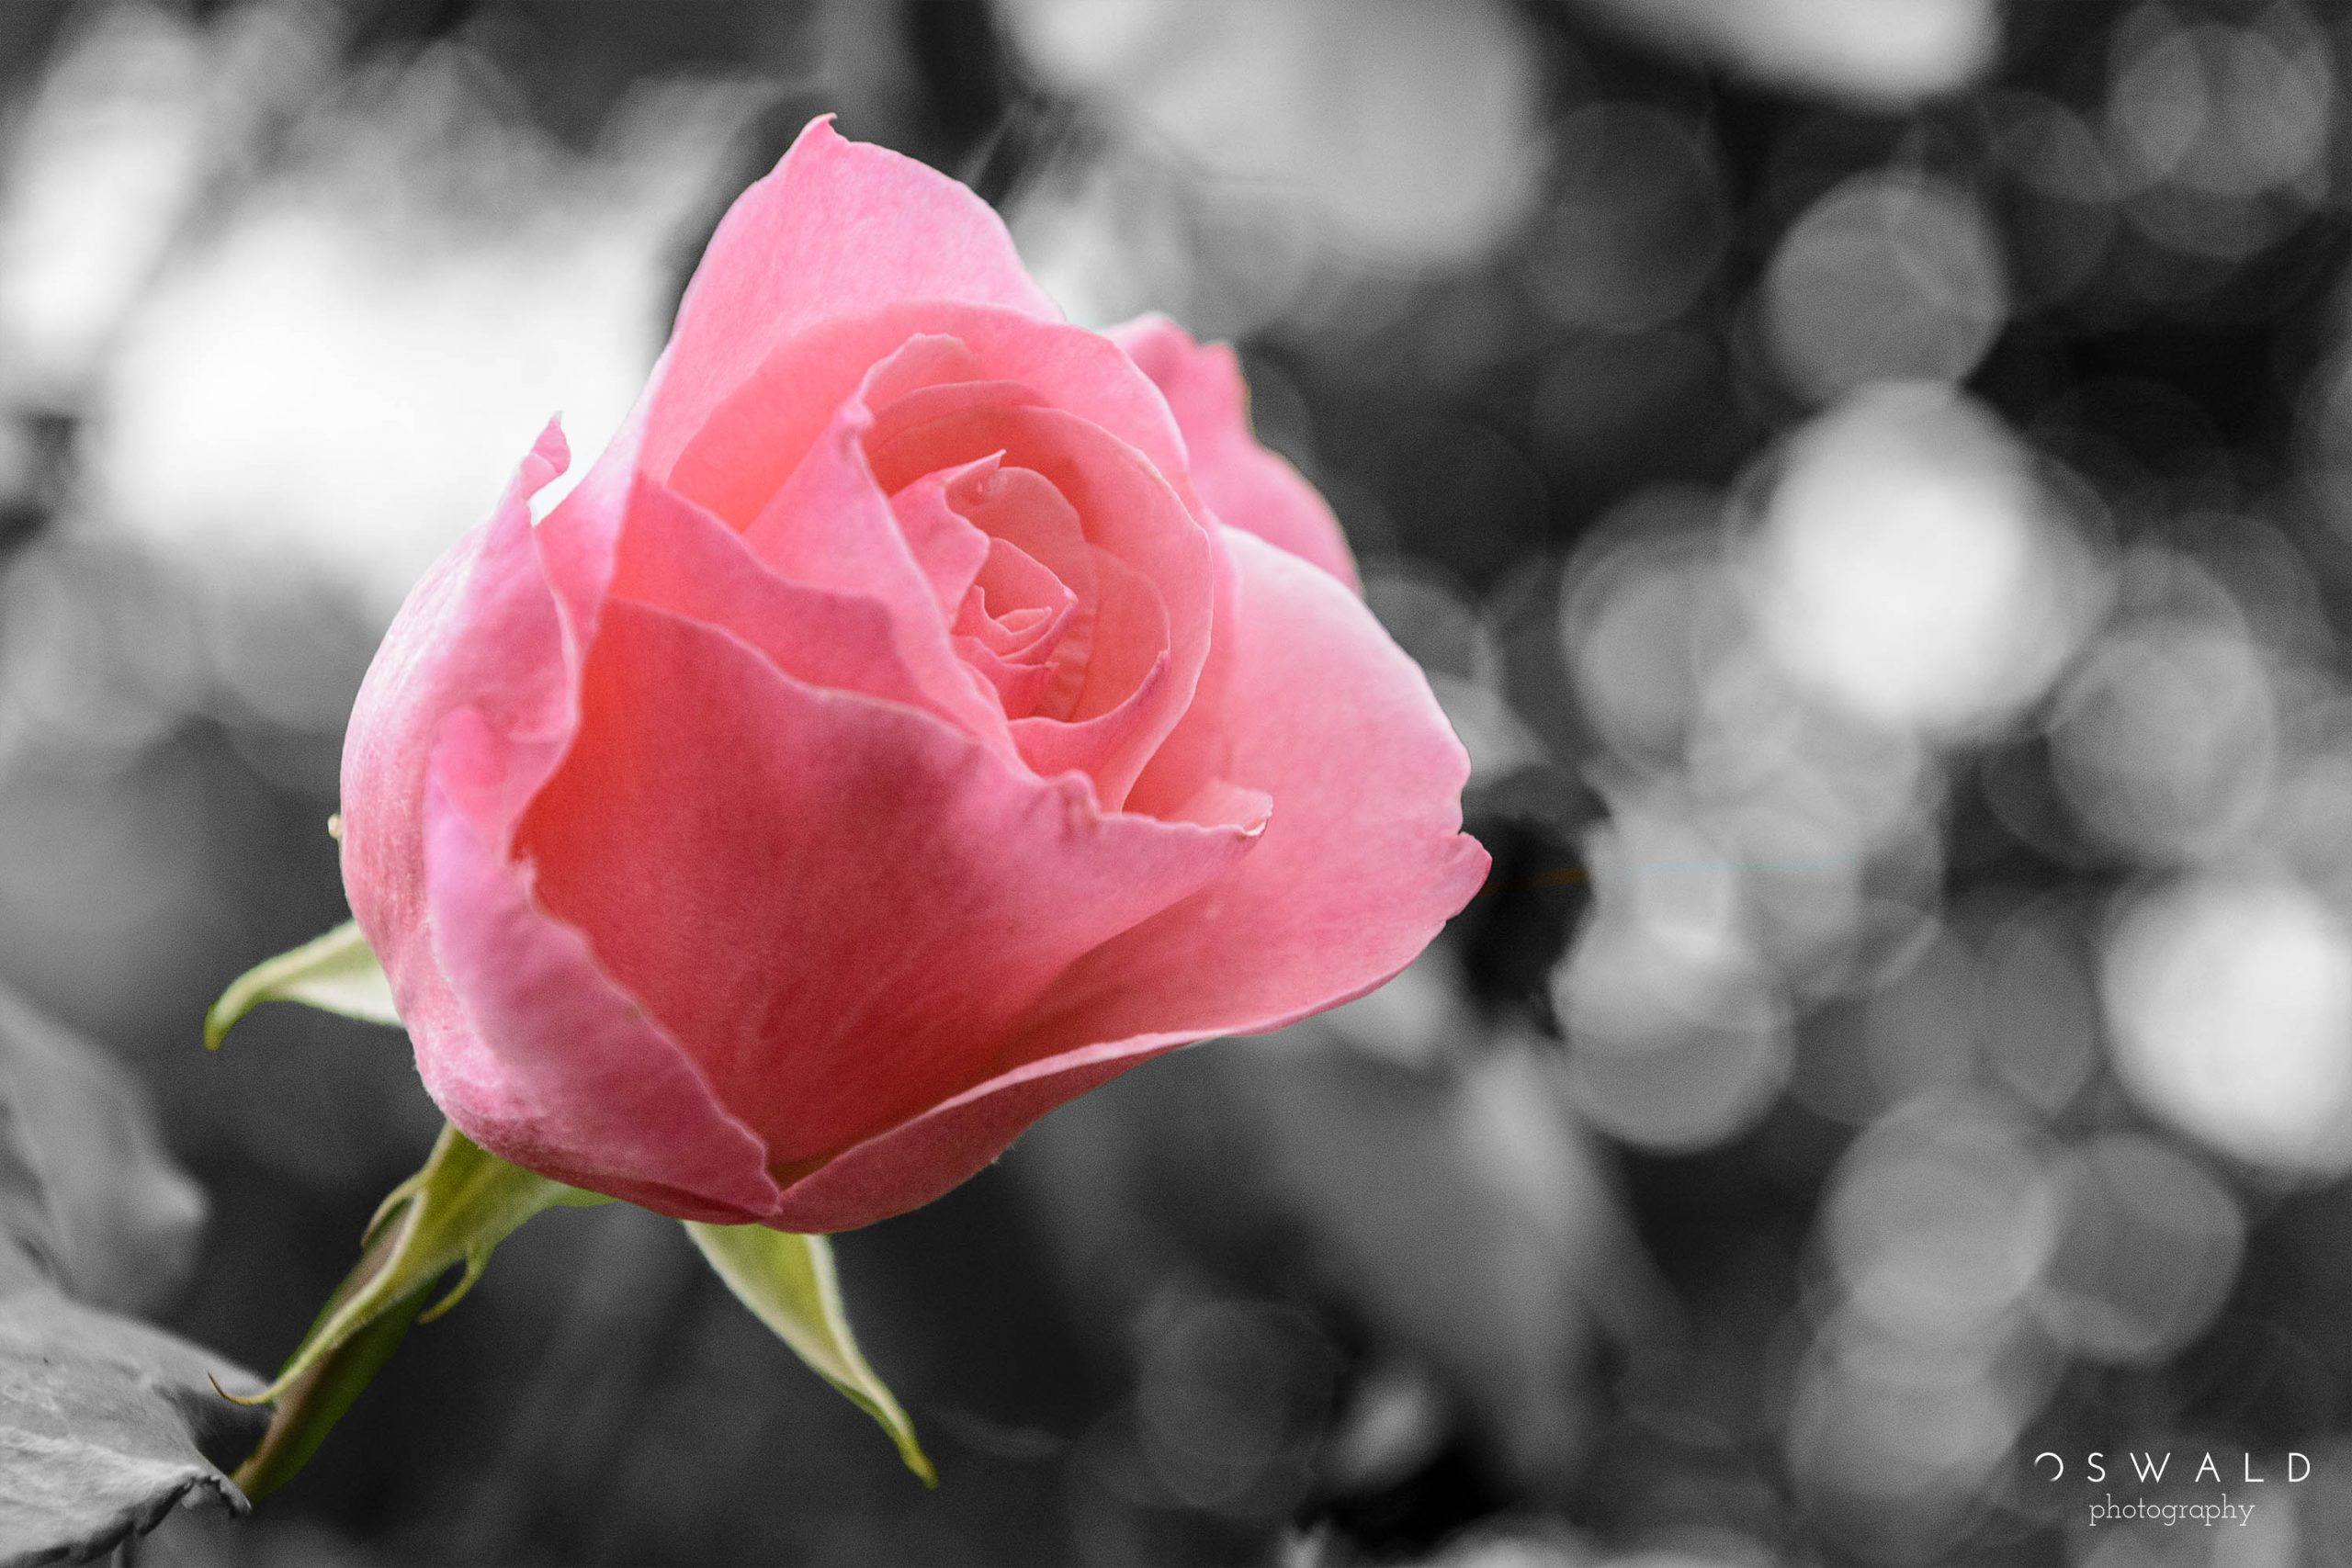 Photograph of a pink rose against a blurred out monochrome background.